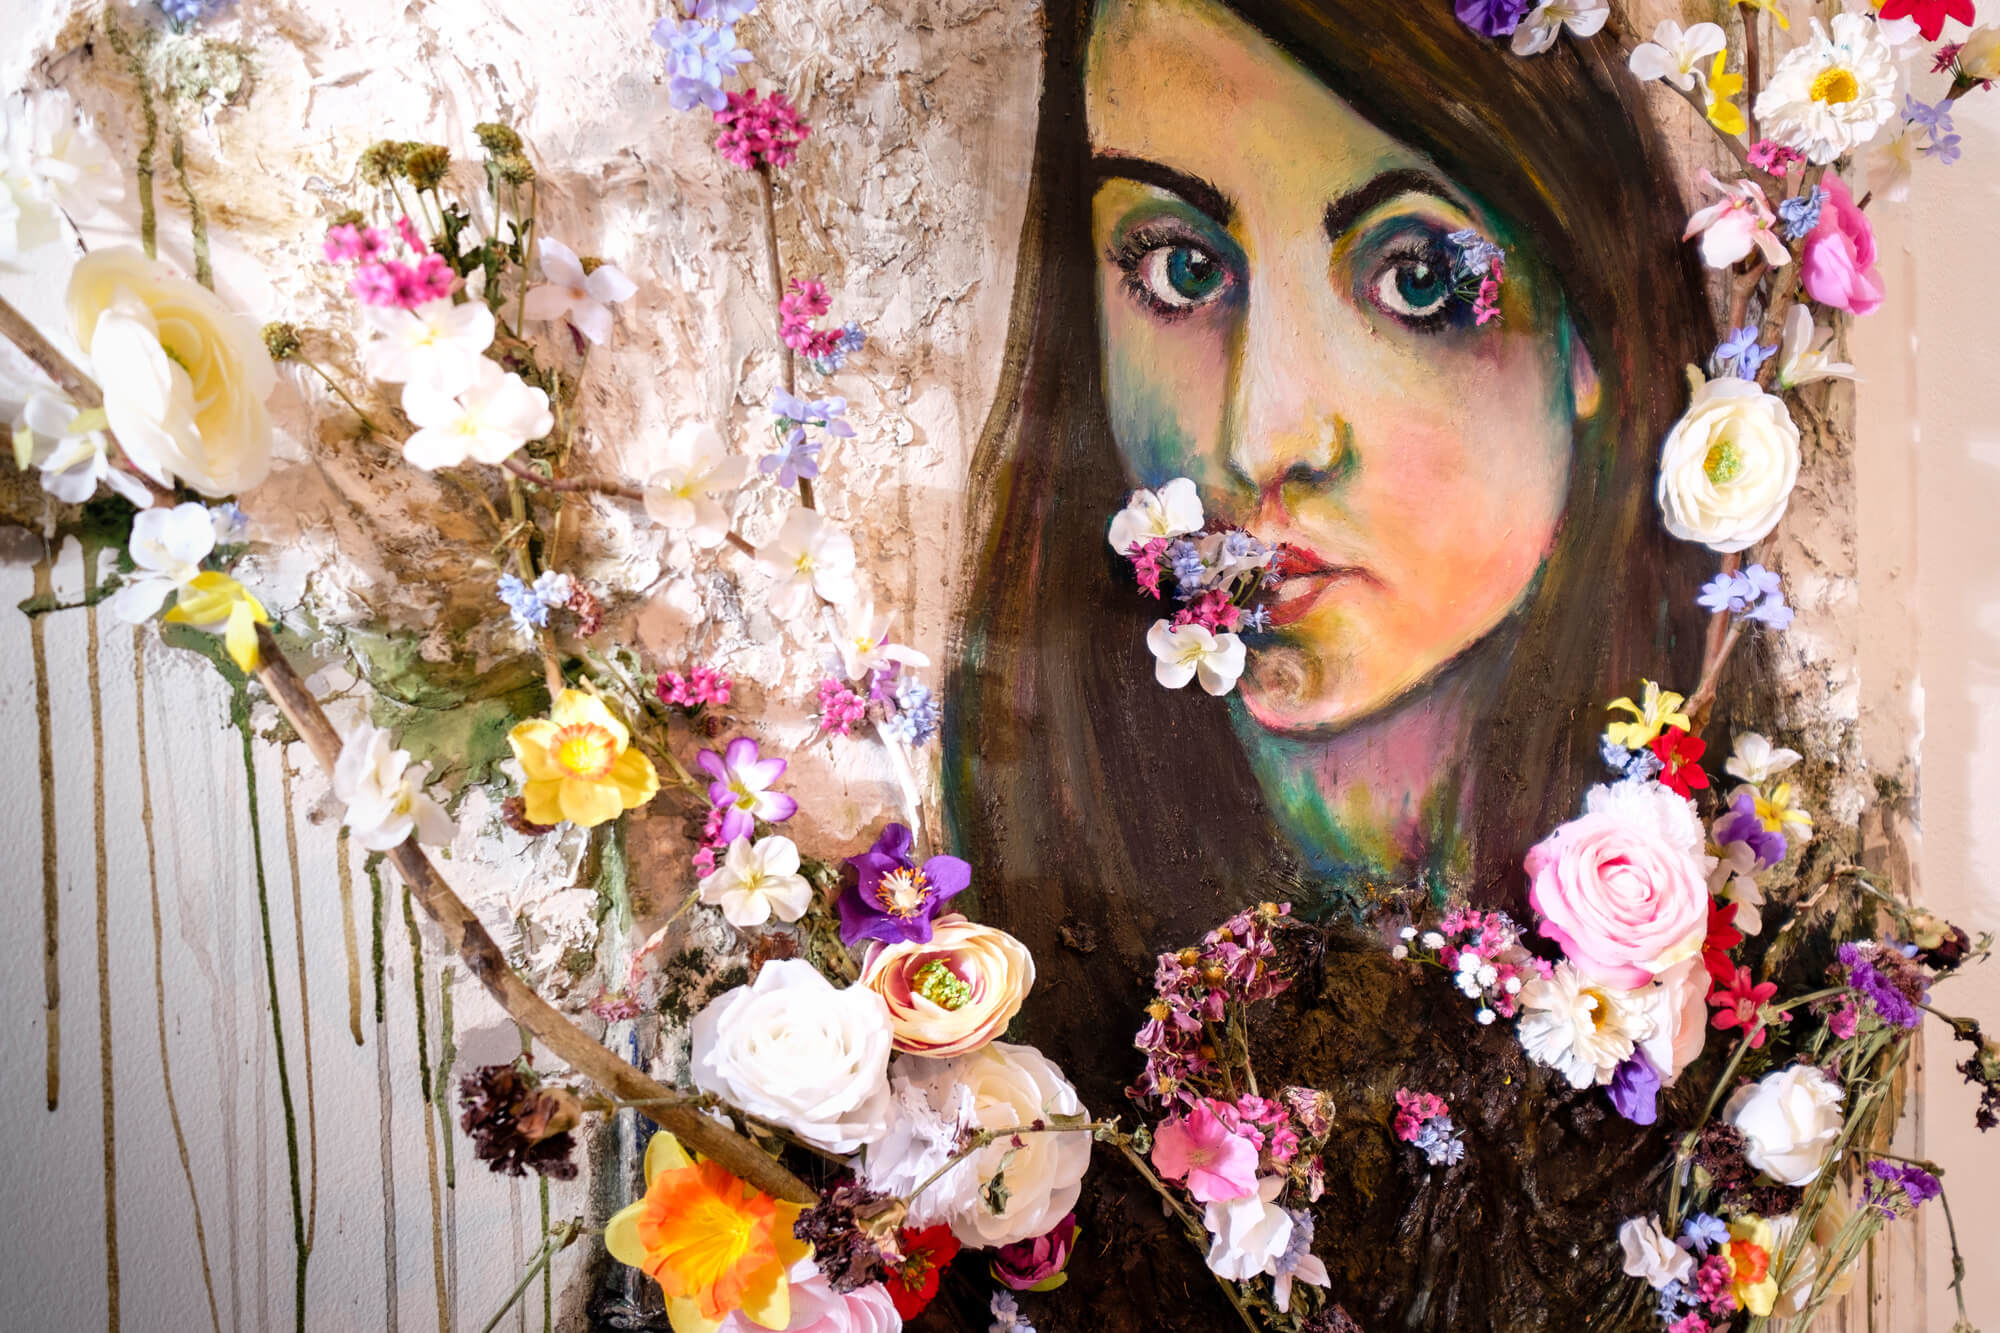 A colourful collage of a painting of a woman with 3d flowers attached